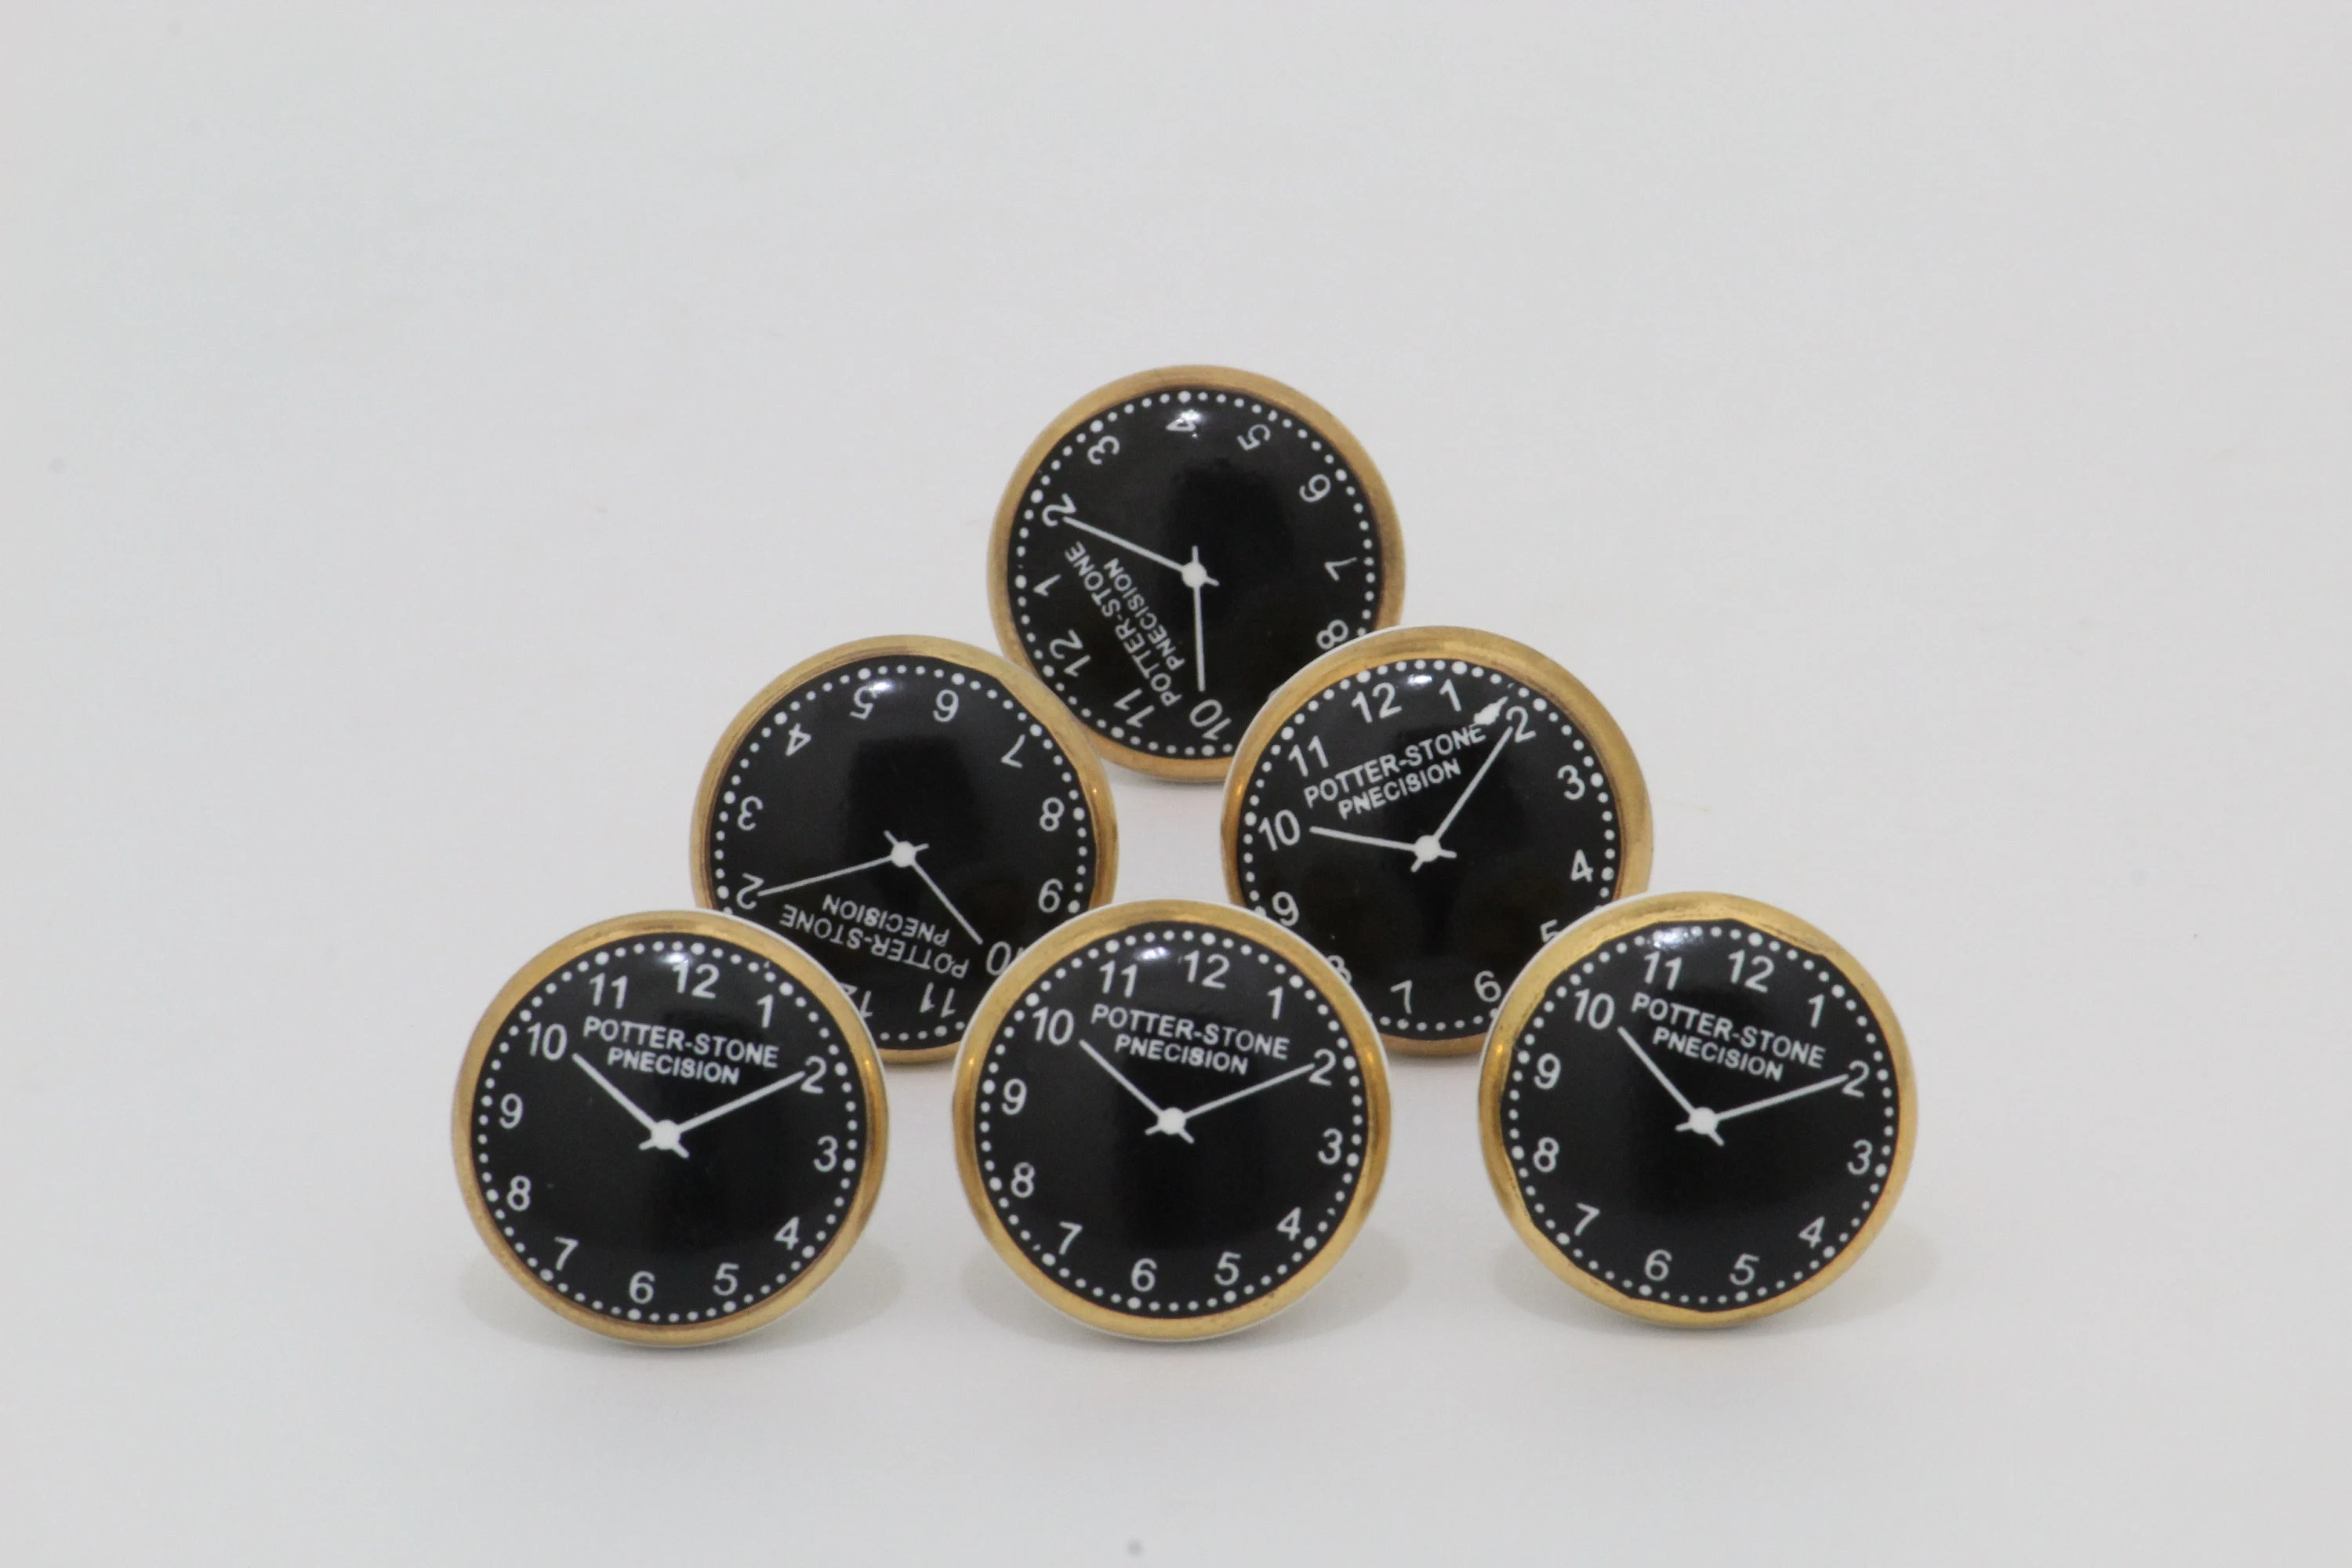 Special Clock Special Clock Design Black And Golden Ceramic Knobs For Cabinet Dresser Drawers Poignées Céramique Cabinet Pulls Perillas Boutons Omk220